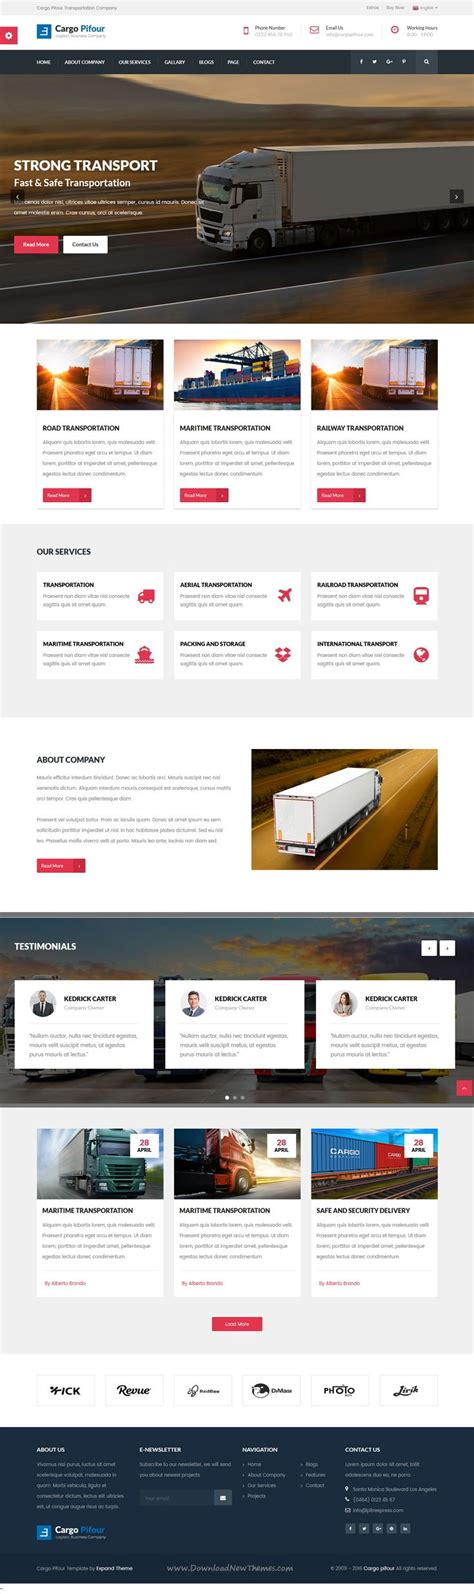 bootstrap templates for logistics best 25 edm template ideas on pinterest email